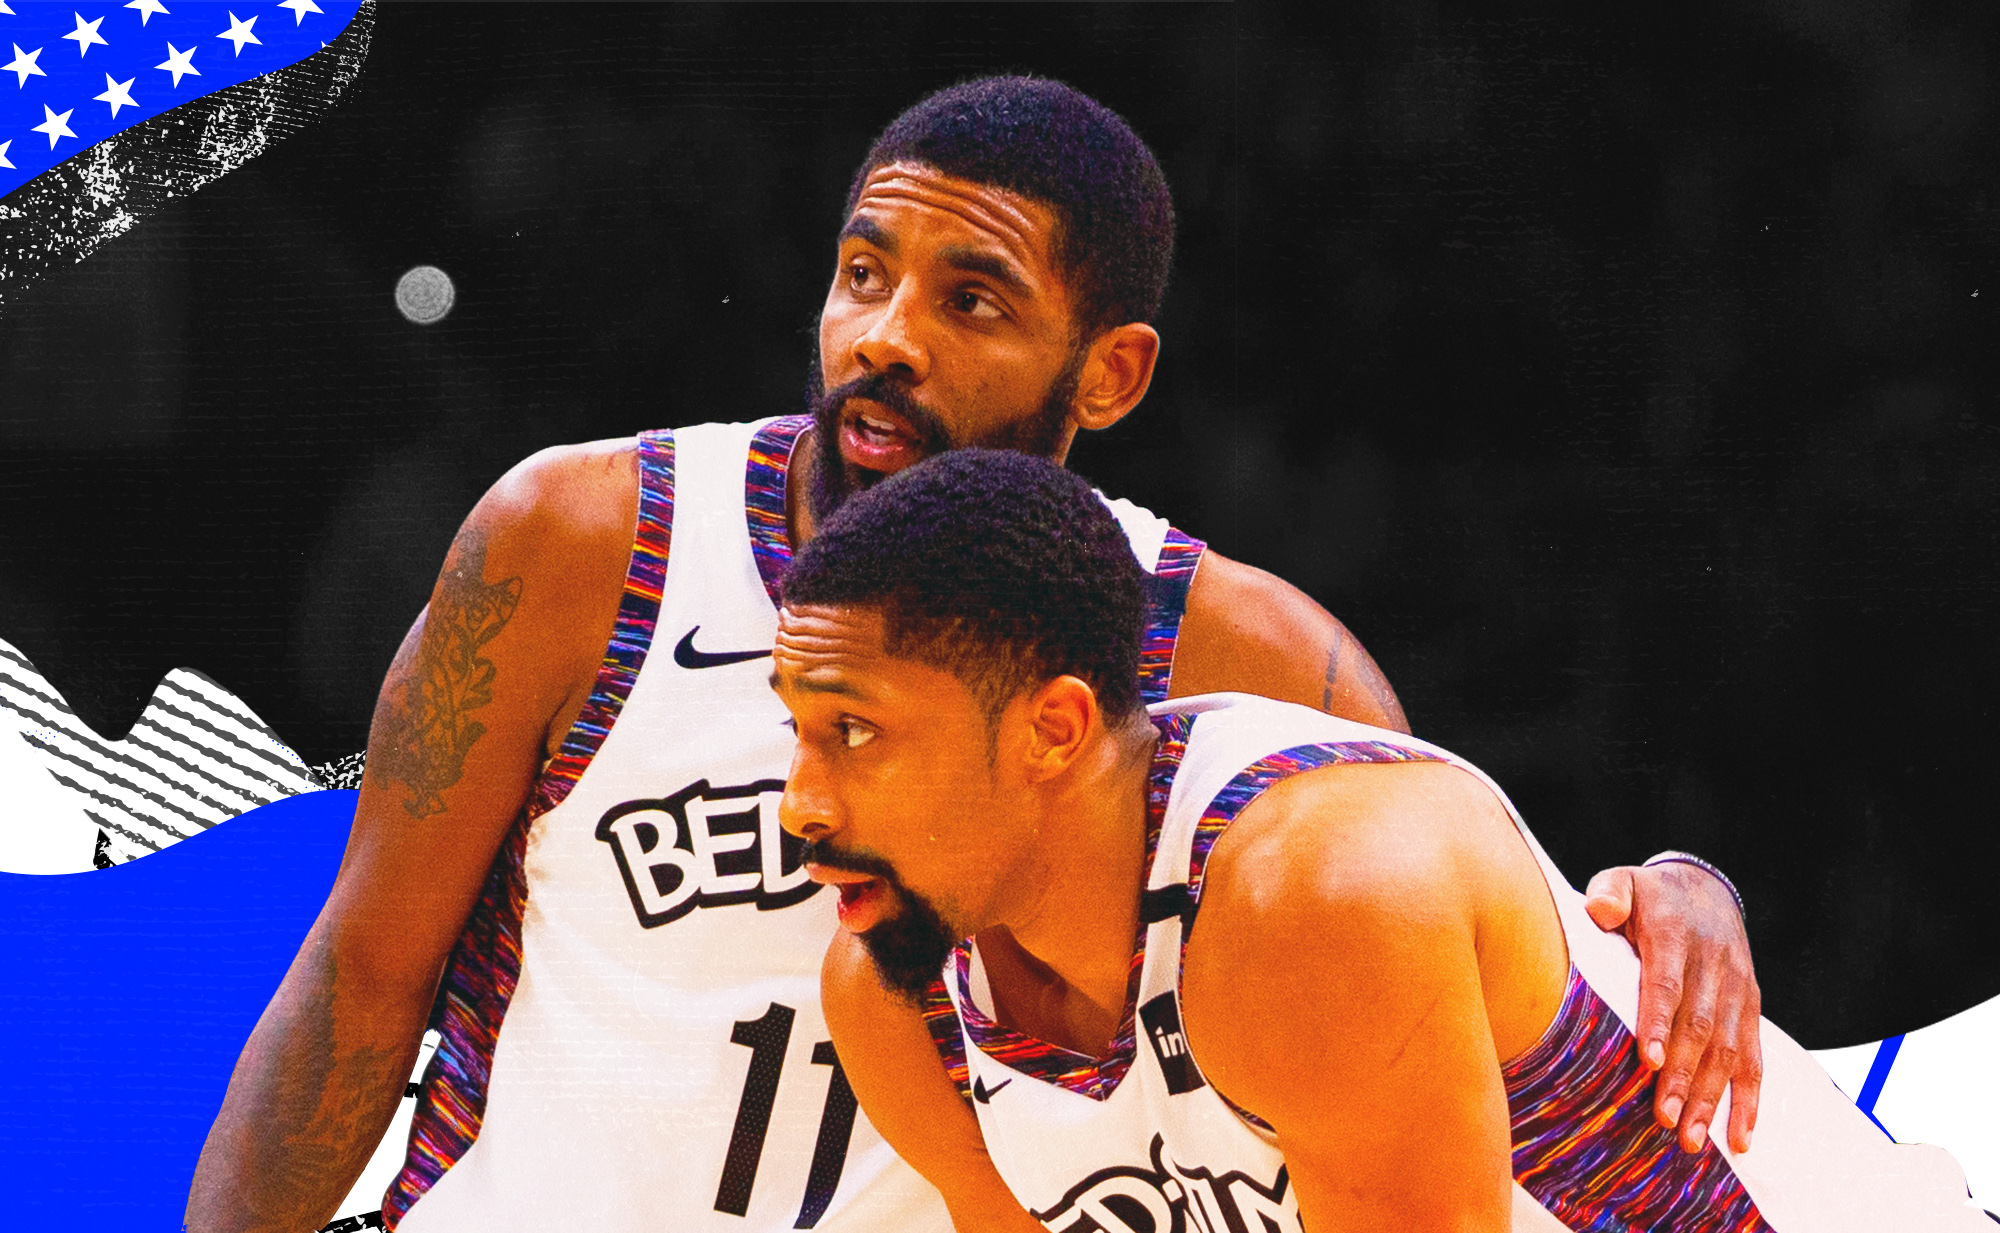 Kyrie Irving and Spencer Dinwiddie embrace for the Nets.